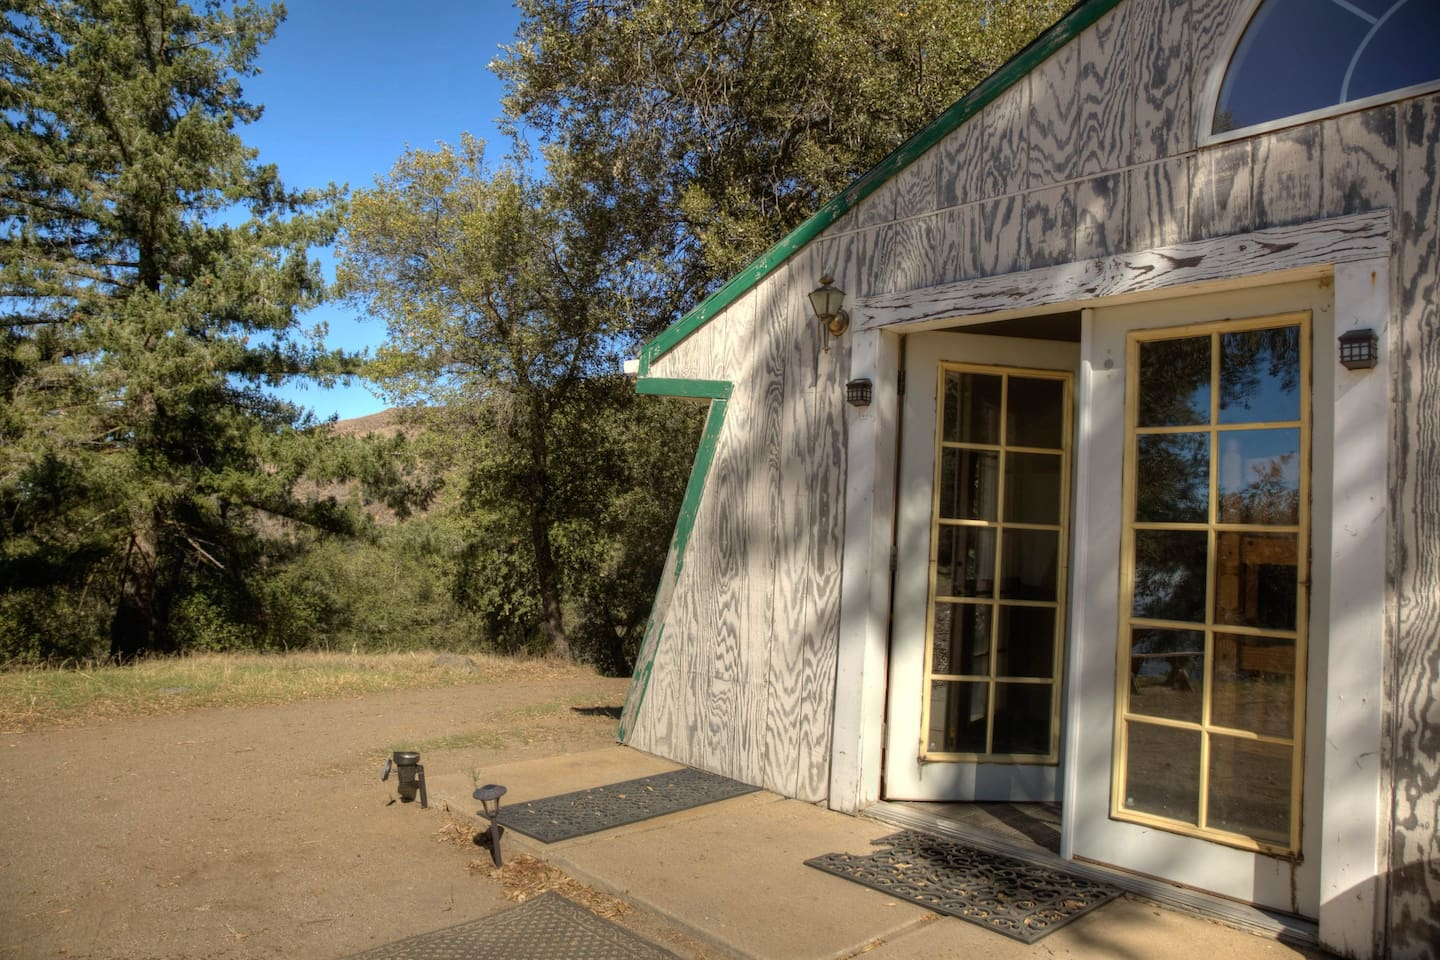 Bunkhouse with 7 bunks, 2 toilets and 3 showers